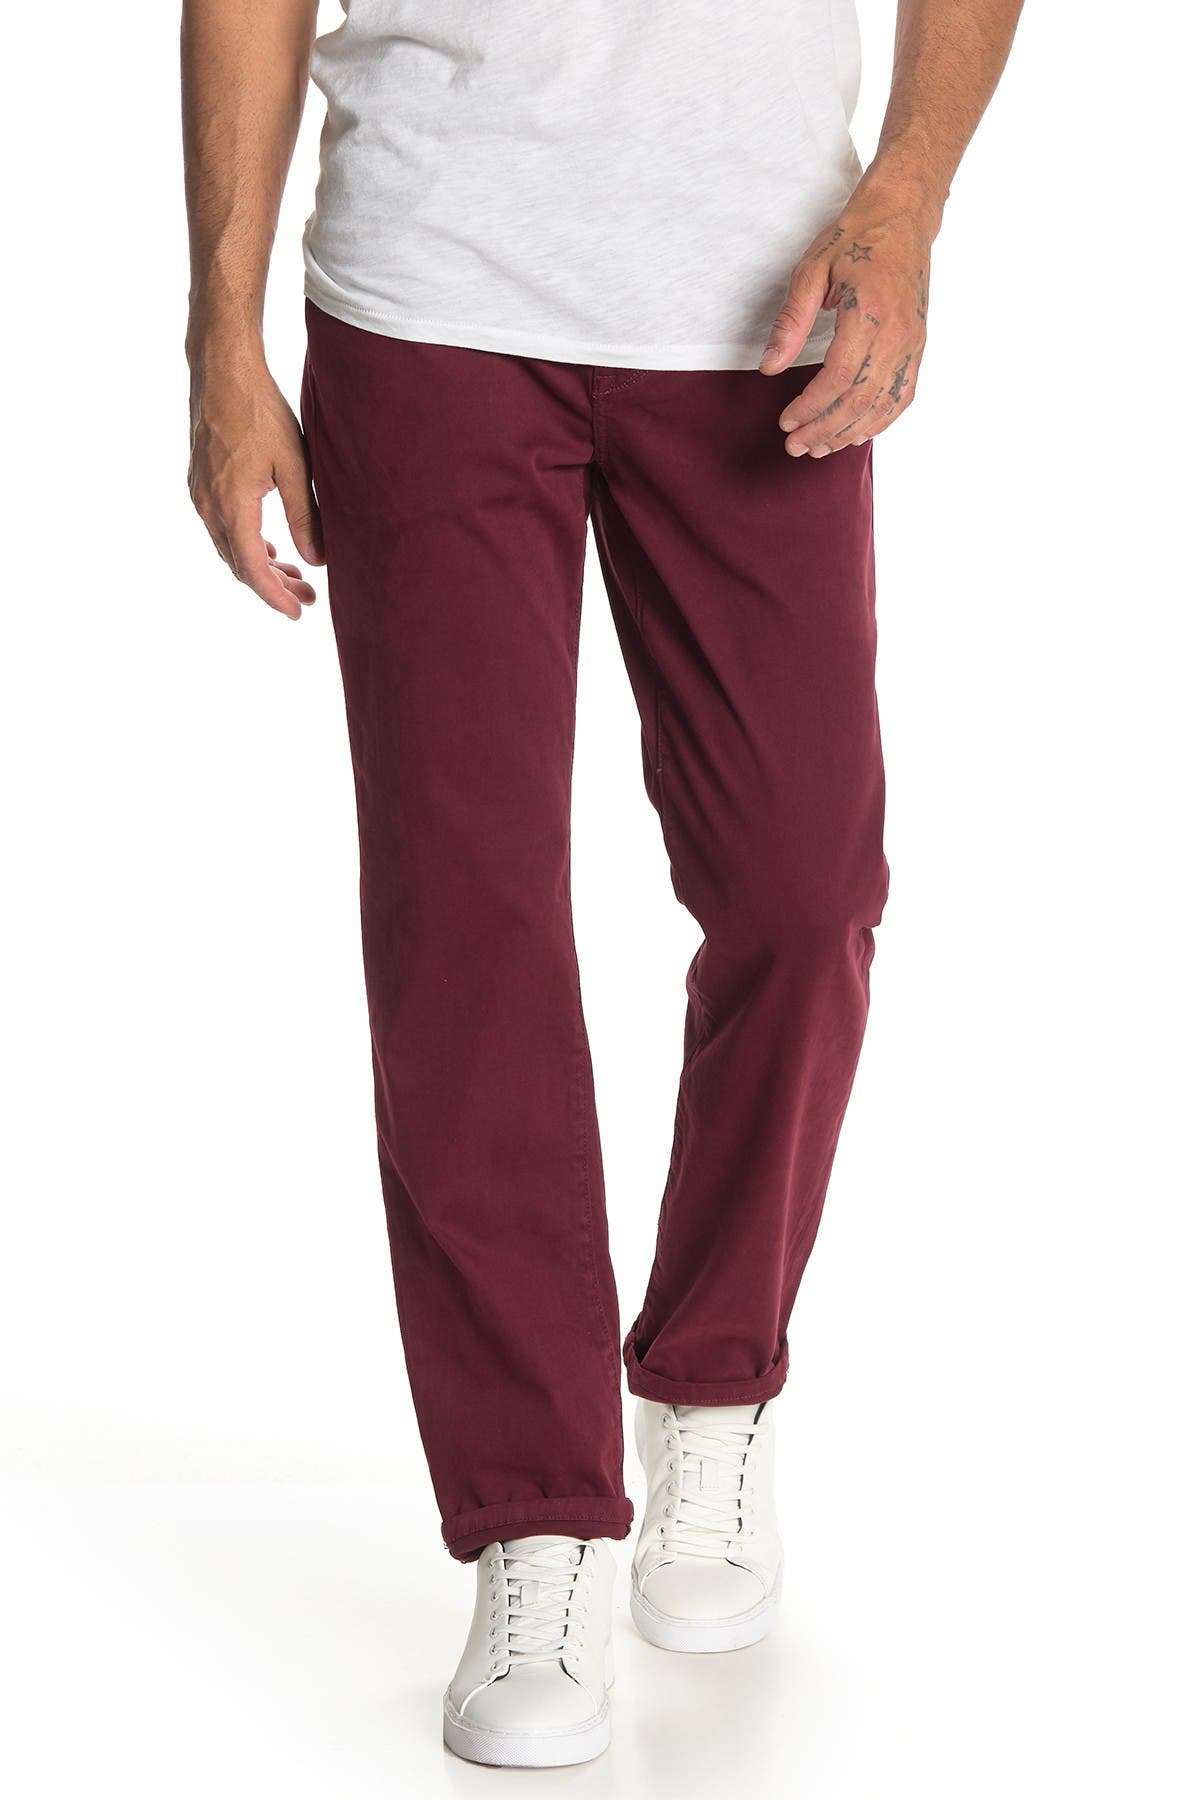 Image of Joe's Jeans The Brixton McCowan Colors Chino Pants